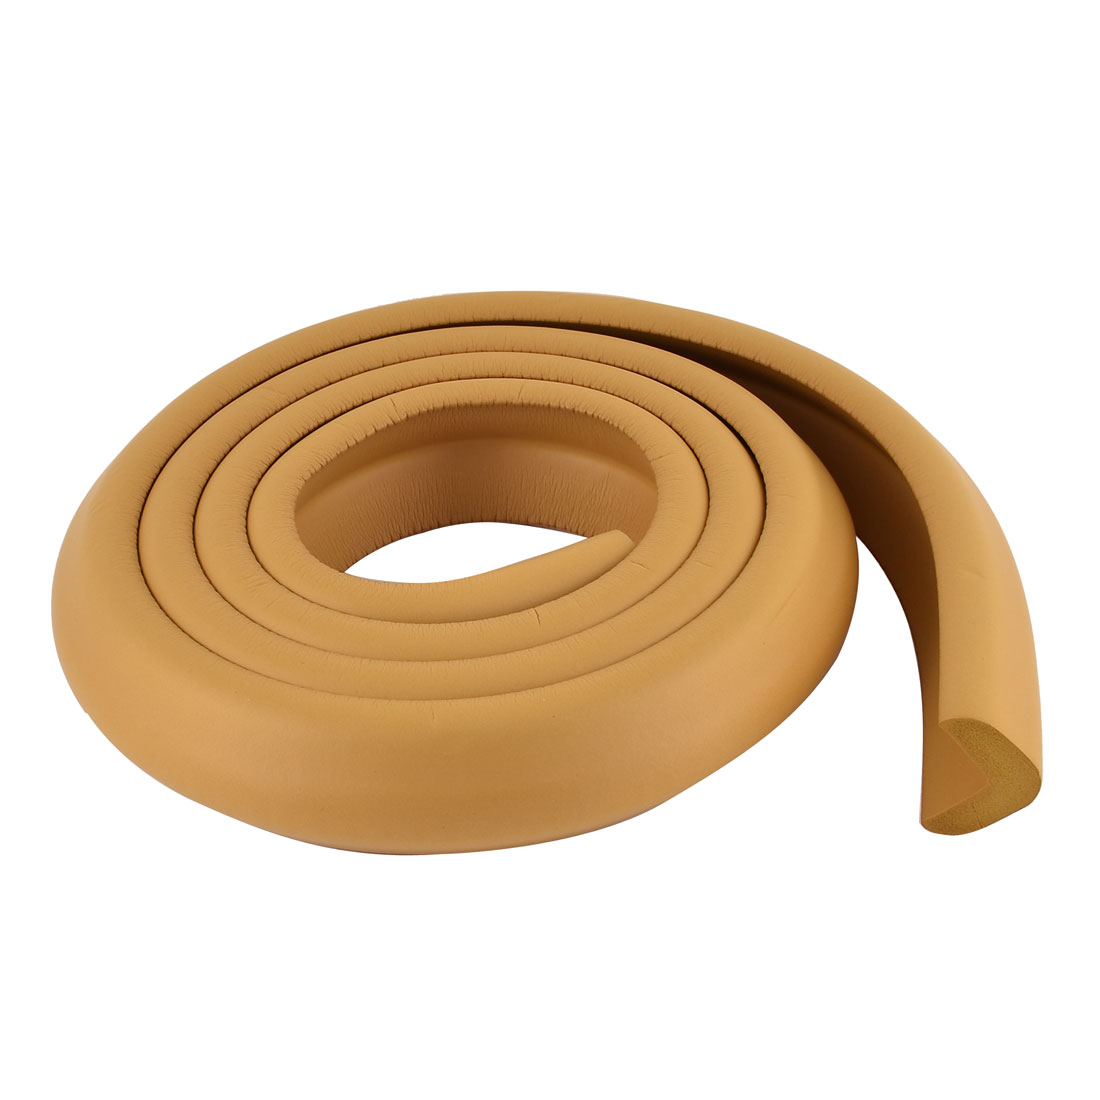 Home Safety Furniture Proofing Corner Edge Guard Protector Cushion Coffee Color